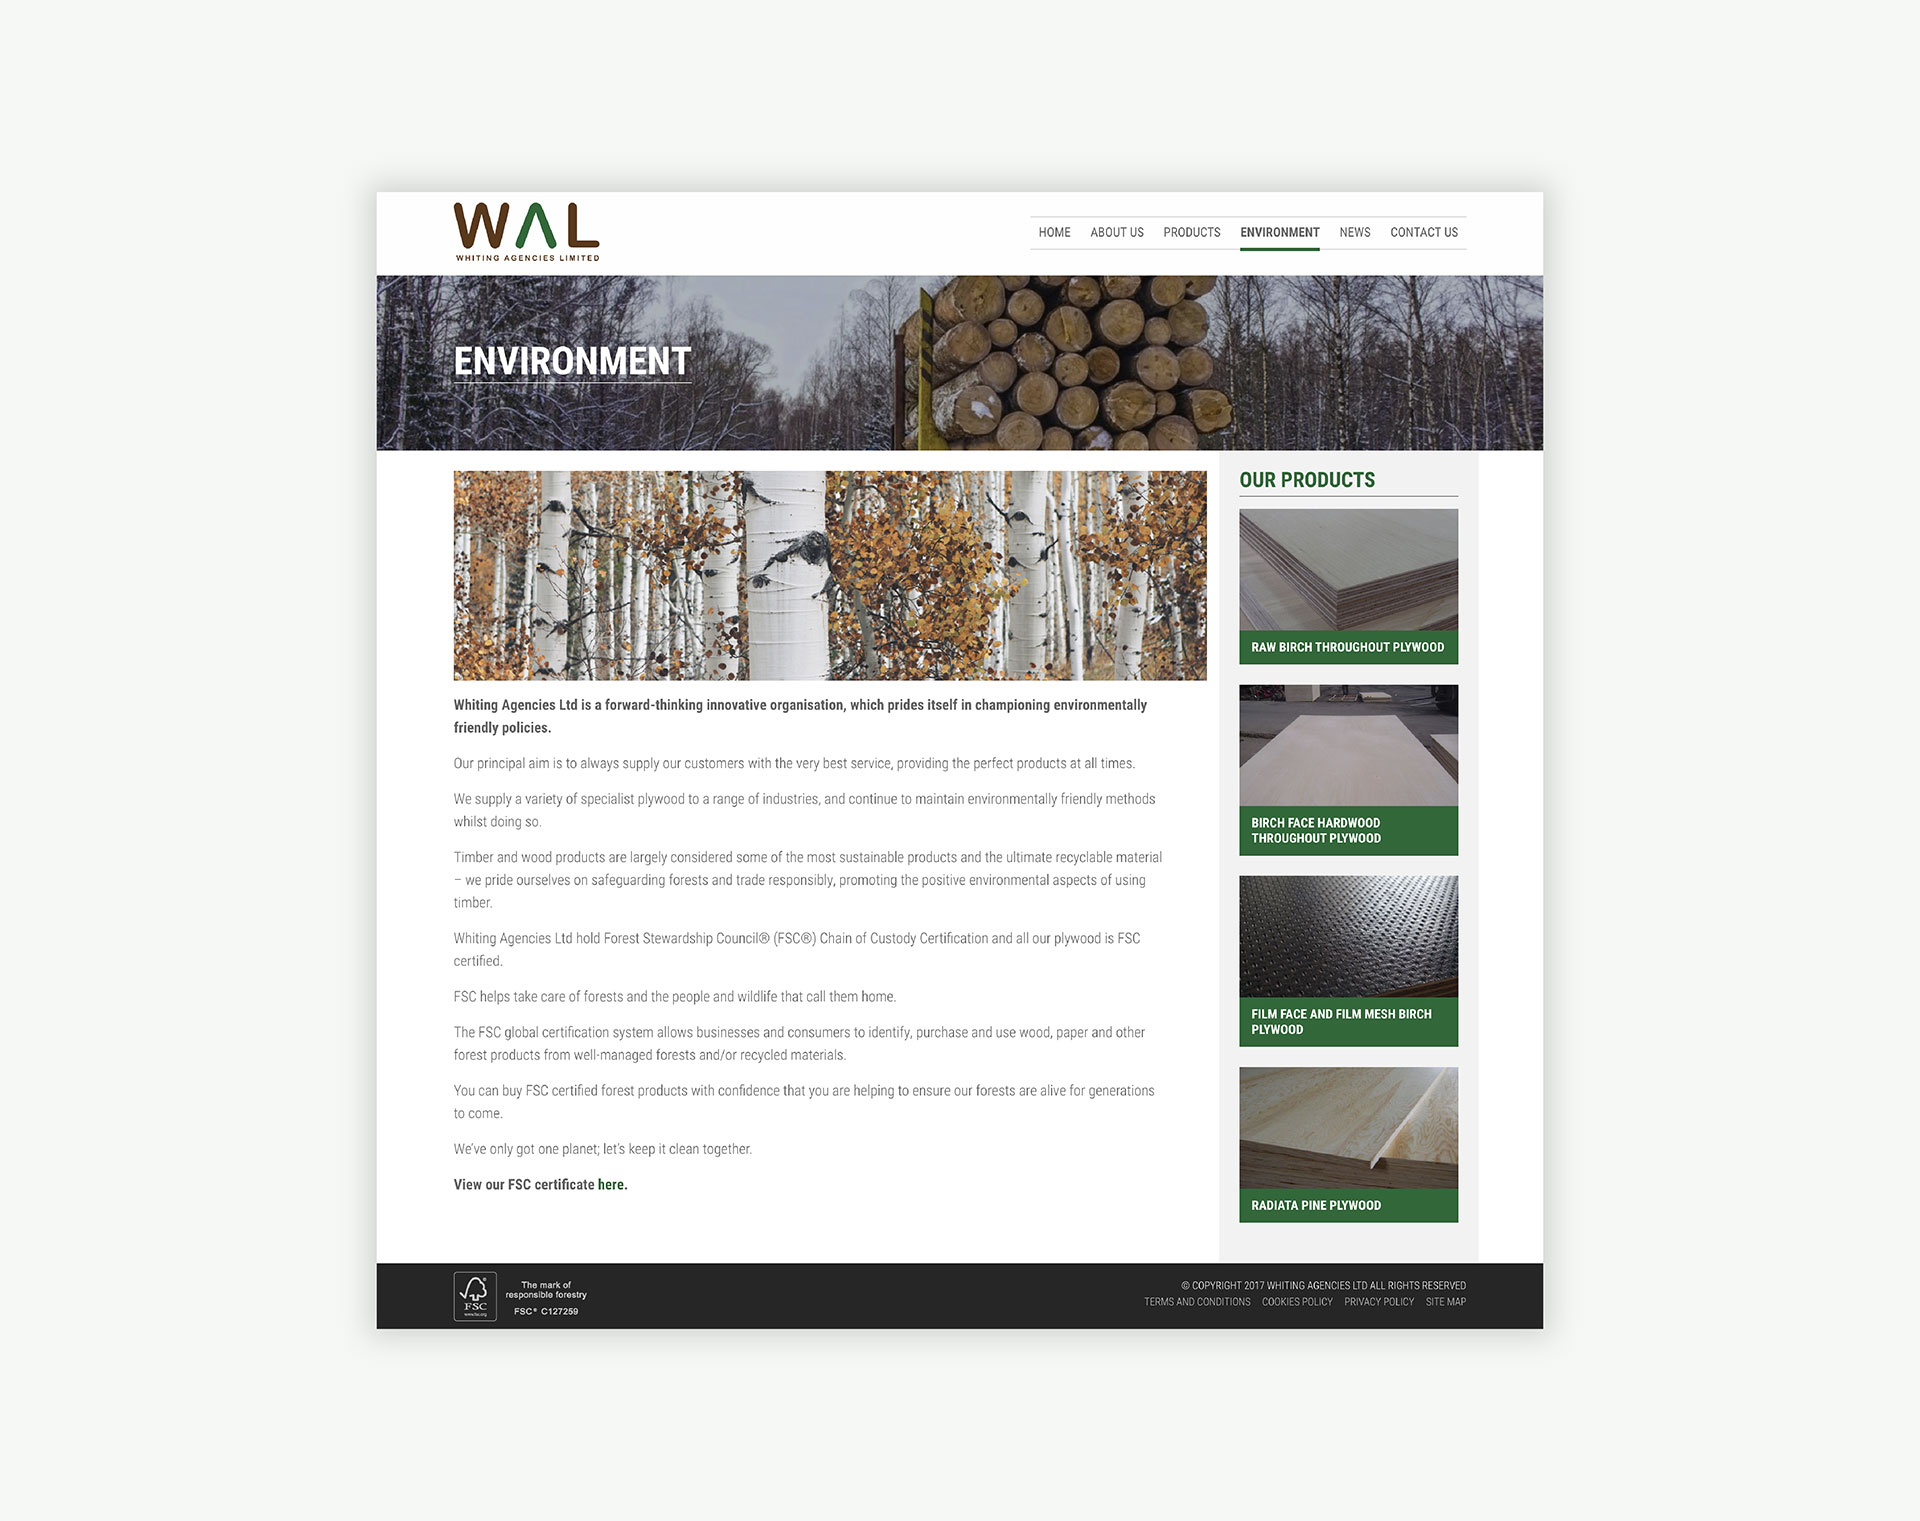 Whiting Agencies Limited Environment Page